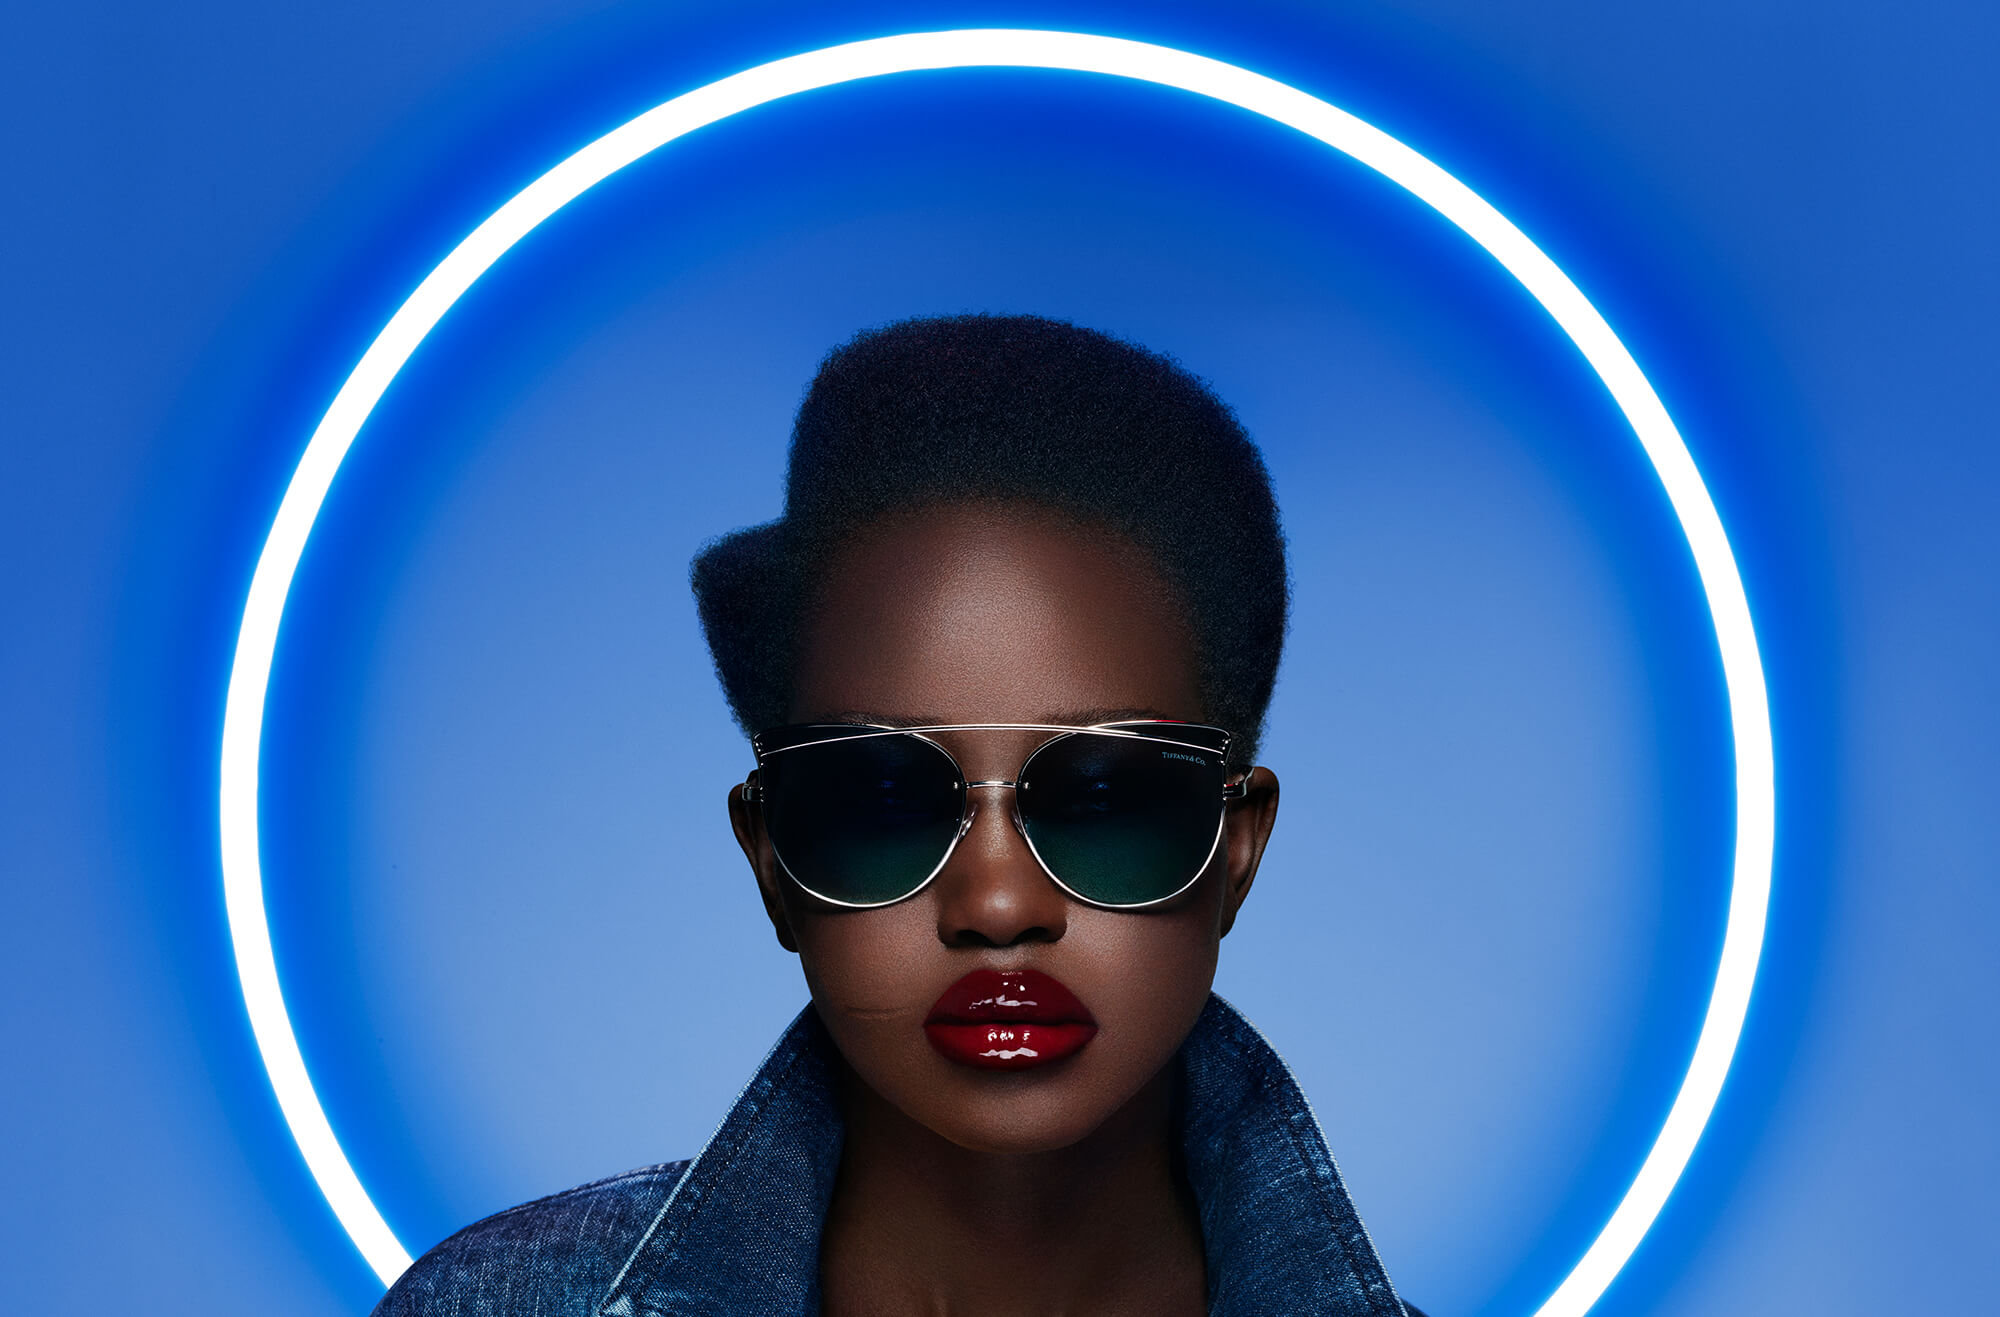 c8b8c3be699a sunglasses   Givenchy - jacket (coming soon)   PAT McGRATH LABS -  LuxeTrance Lipstick